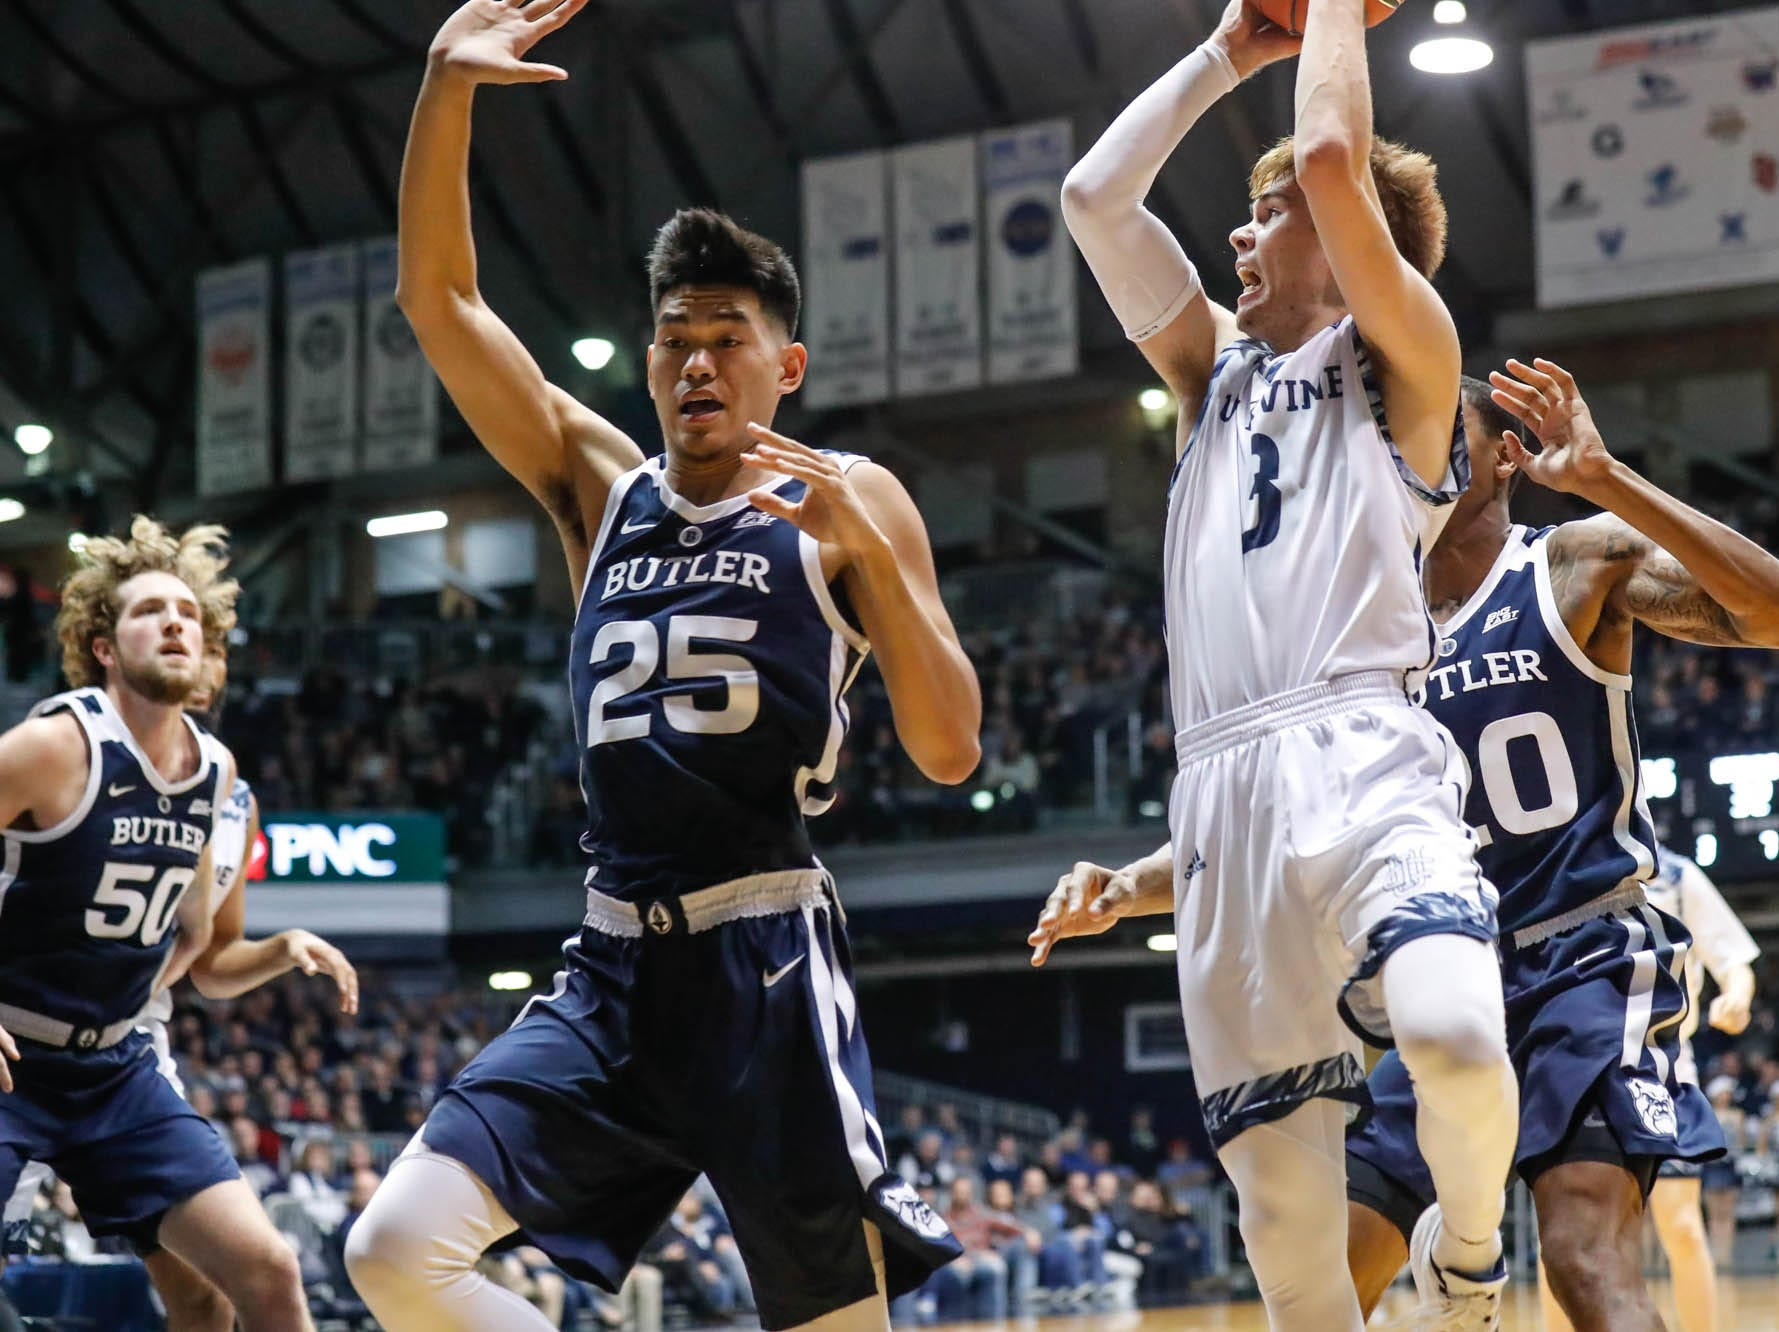 Butler University's forward Christian David (25), attempts to block a shot by UC Irvine's guard Robert Cartwright (3), during a game between Butler University and UC Irvine, at Hinkle Fieldhouse on Friday, Dec. 21, 2018. Butler University's center Joey Brunk (50), Butler University's guard/forward Henry Baddley (20).